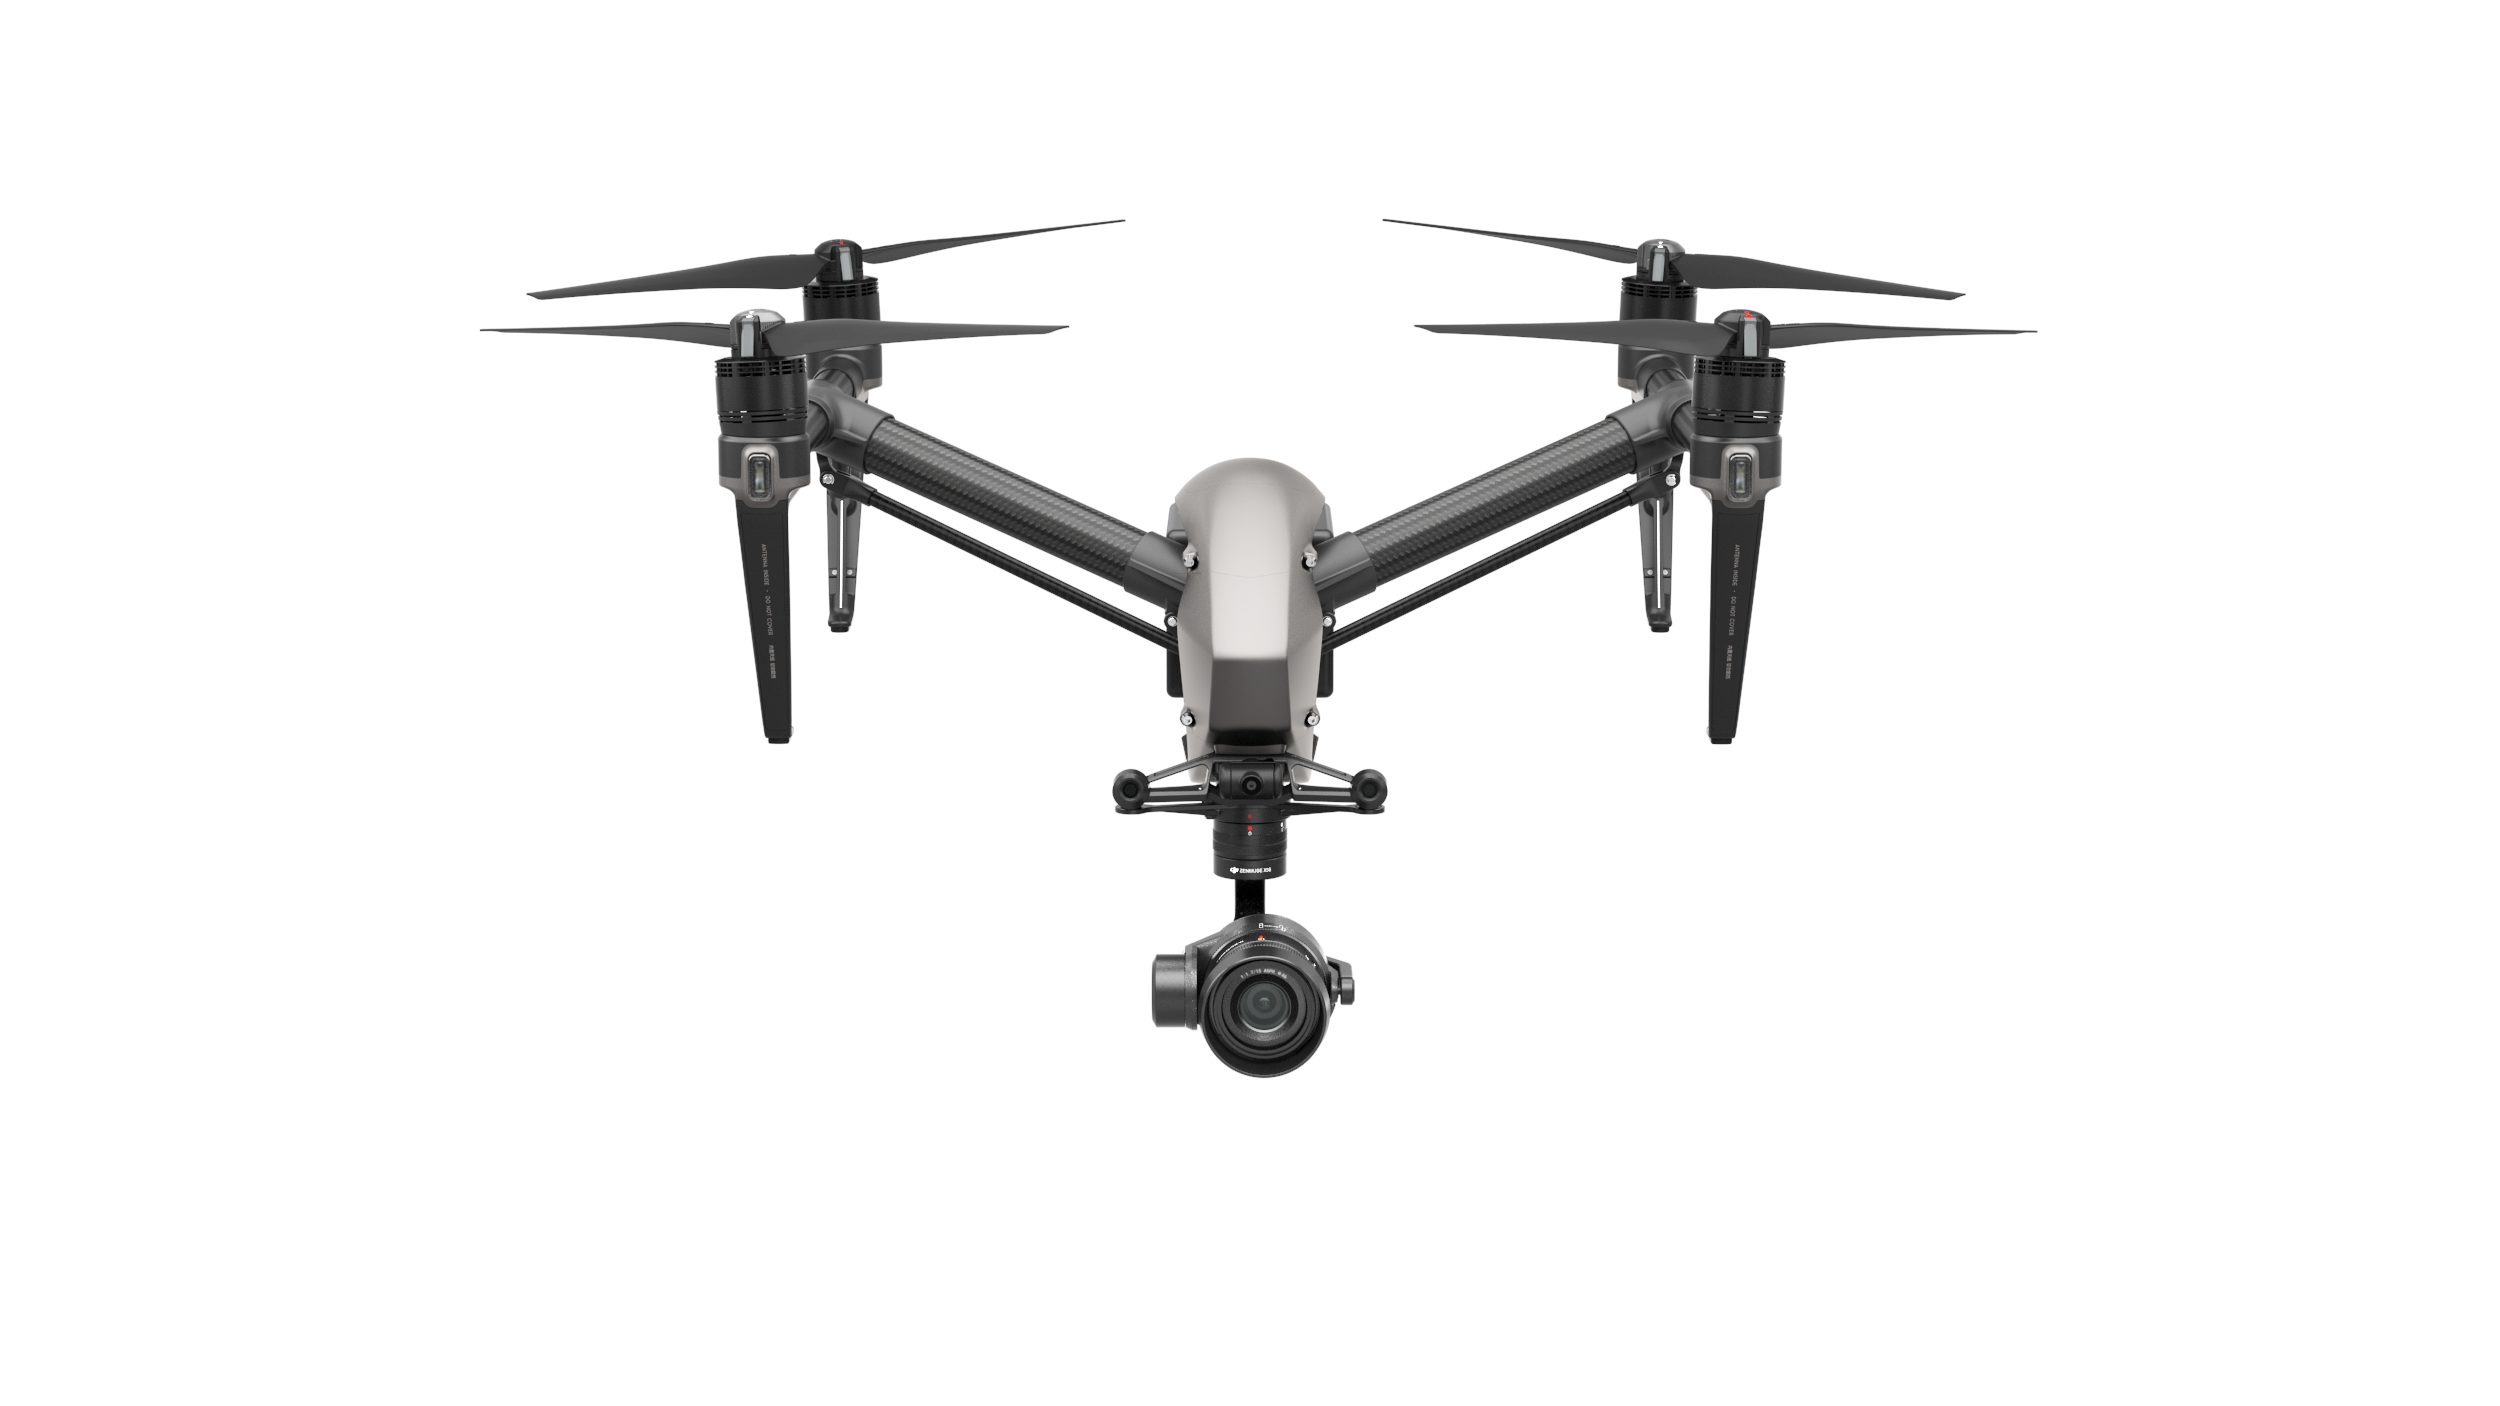 uploads drone drone PNG18 4